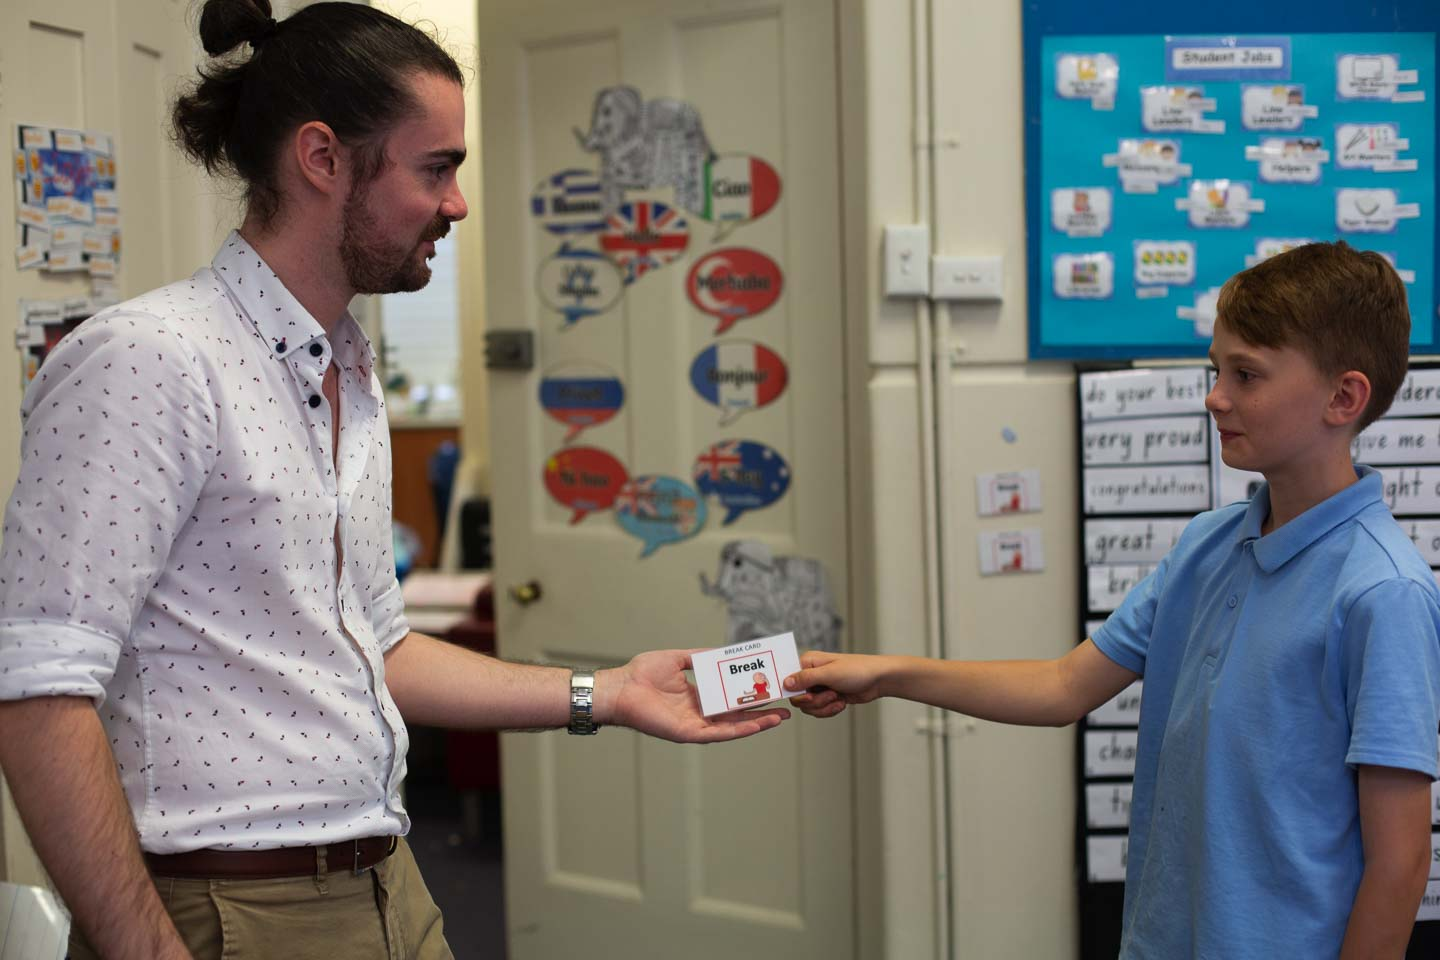 Classroom teacher presenting break out card to young student